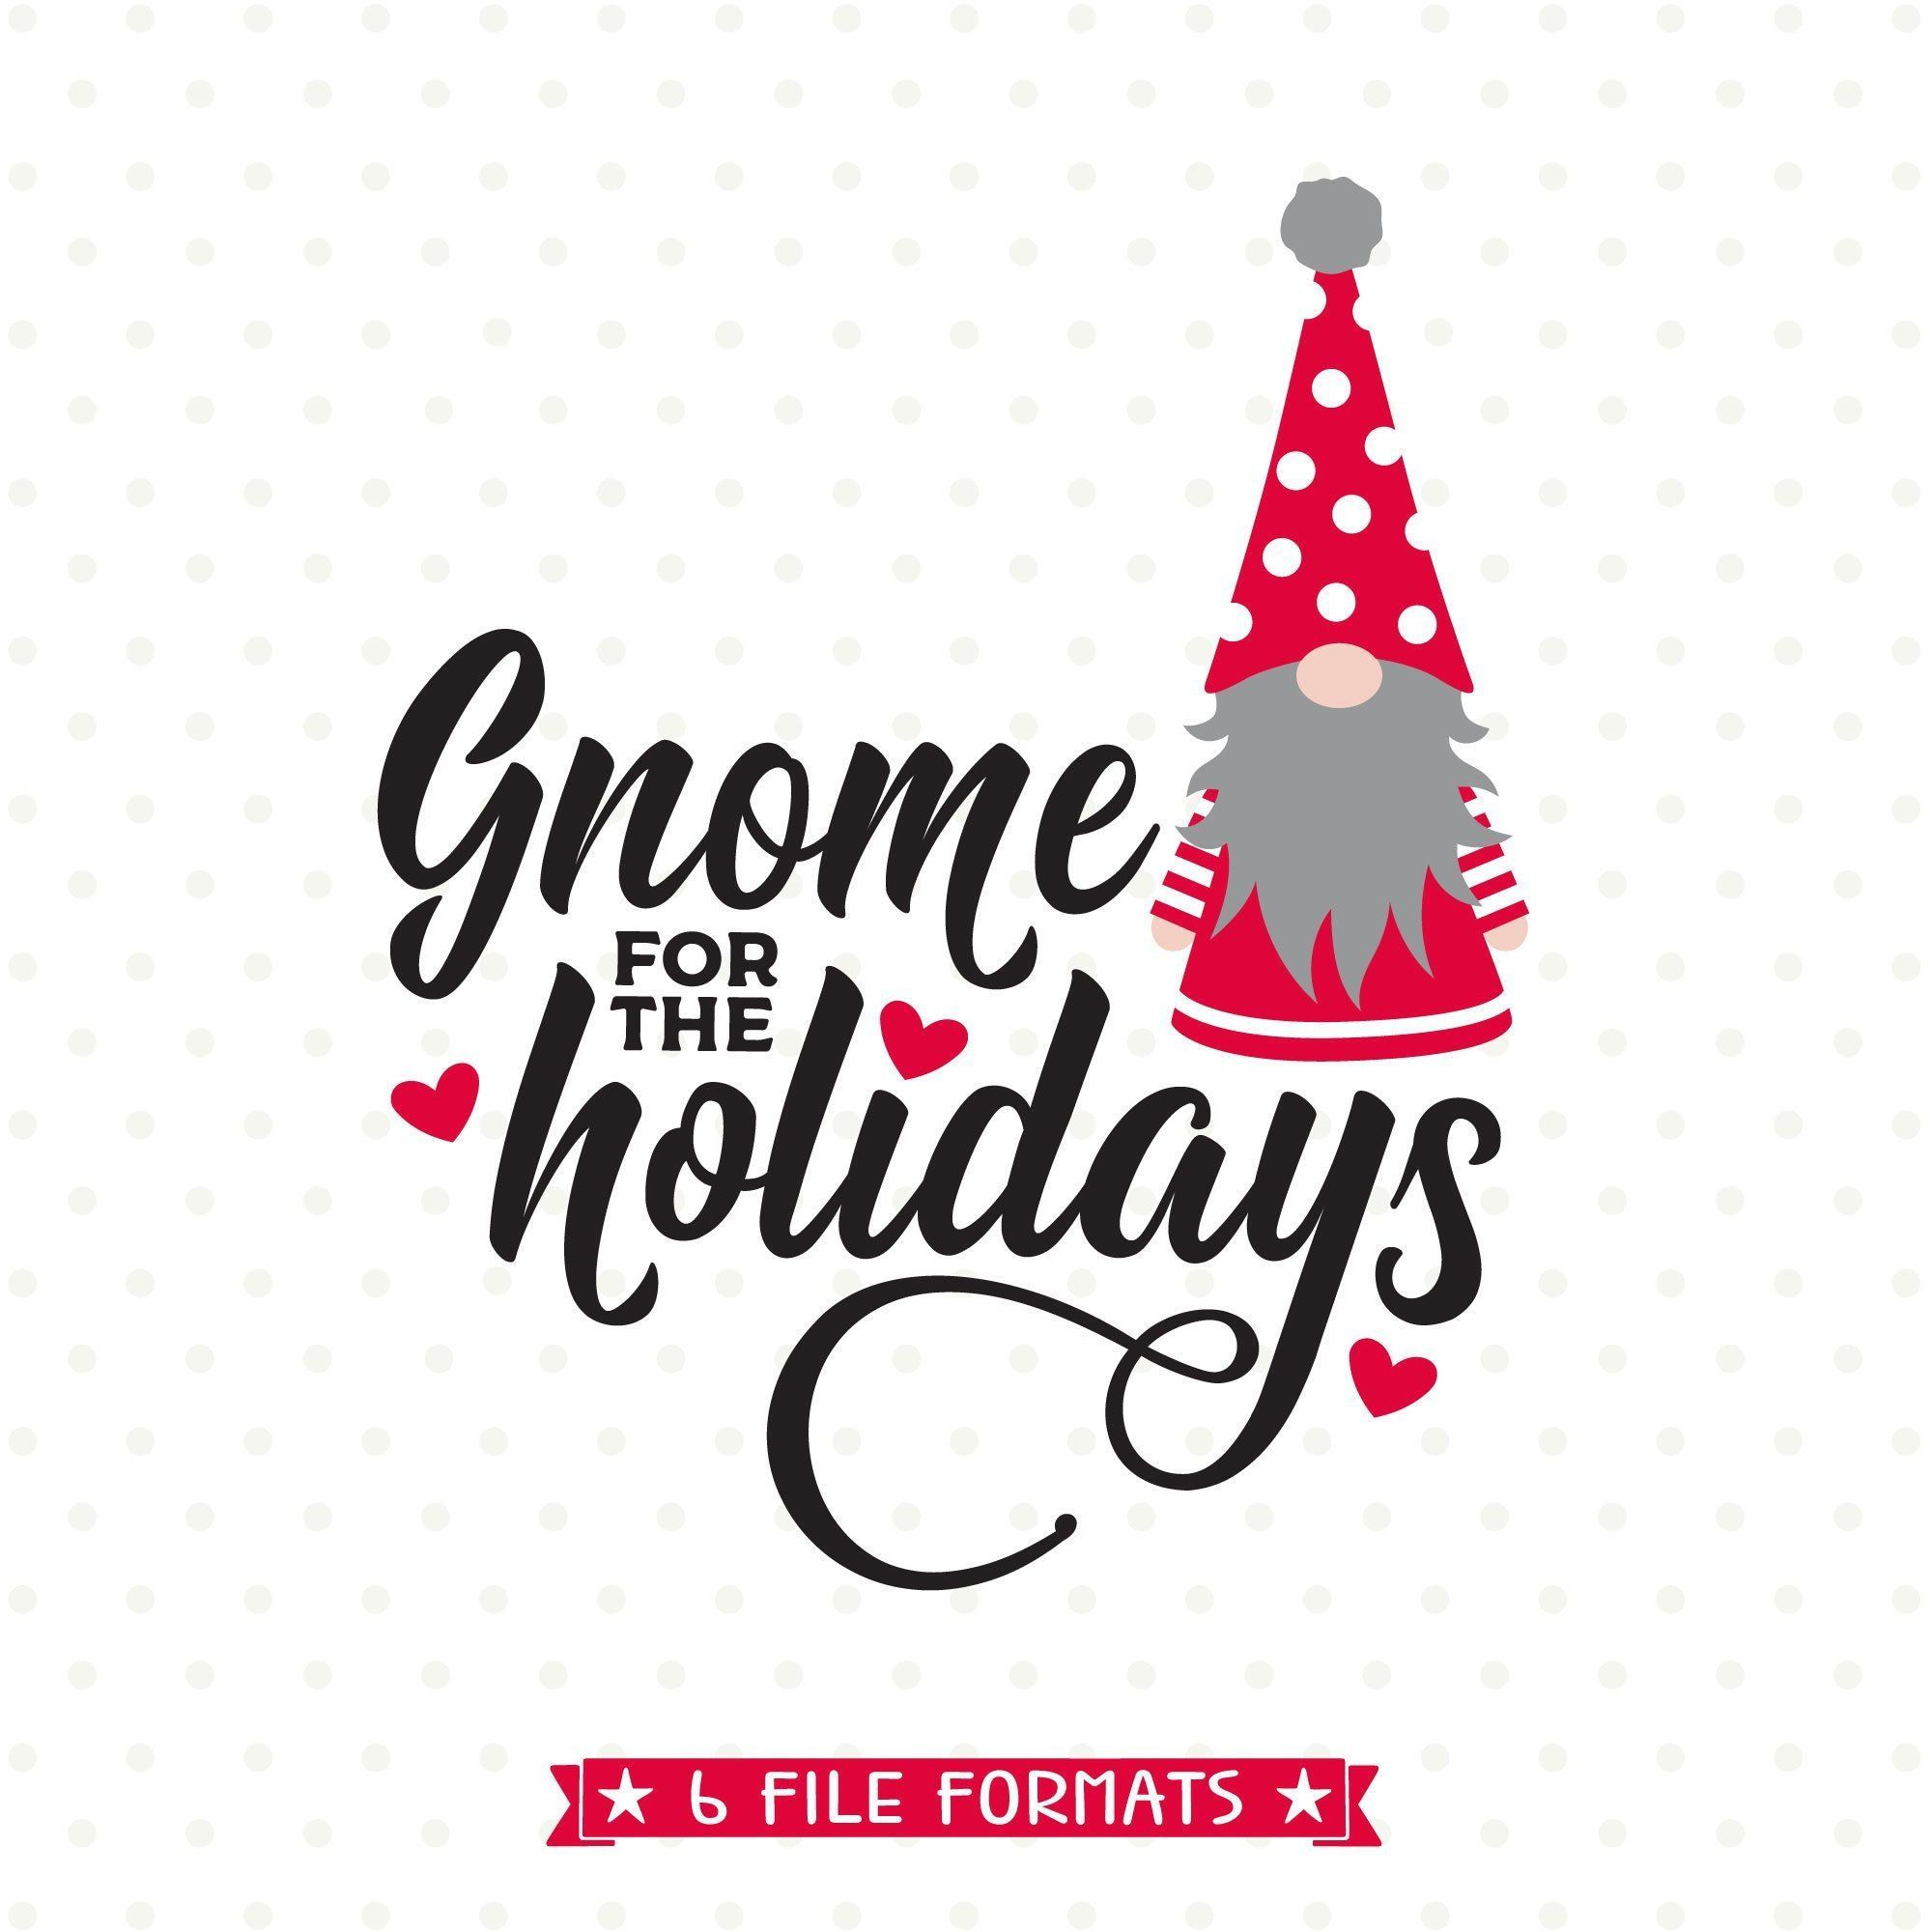 Christmas Gnome Svg.Christmas Svg Christmas Gnome Svg Home For The Holidays